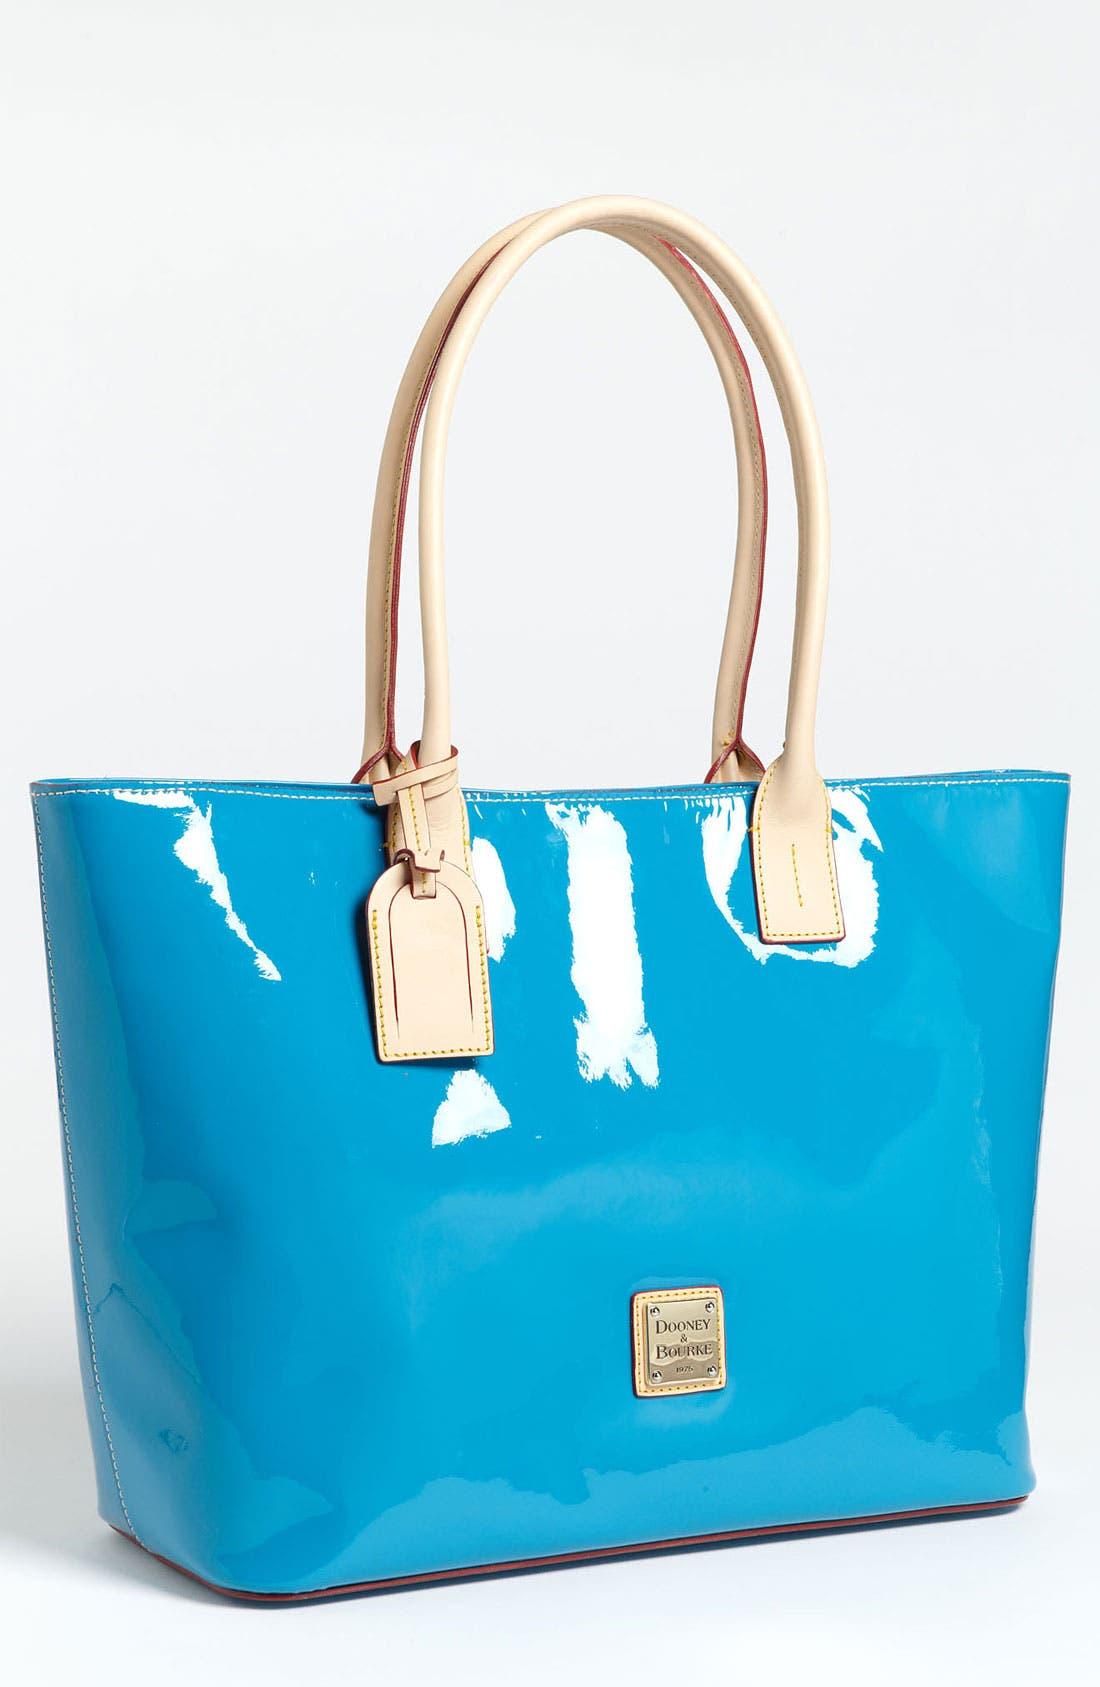 Main Image - Dooney & Bourke 'Large' Patent Leather Shopper